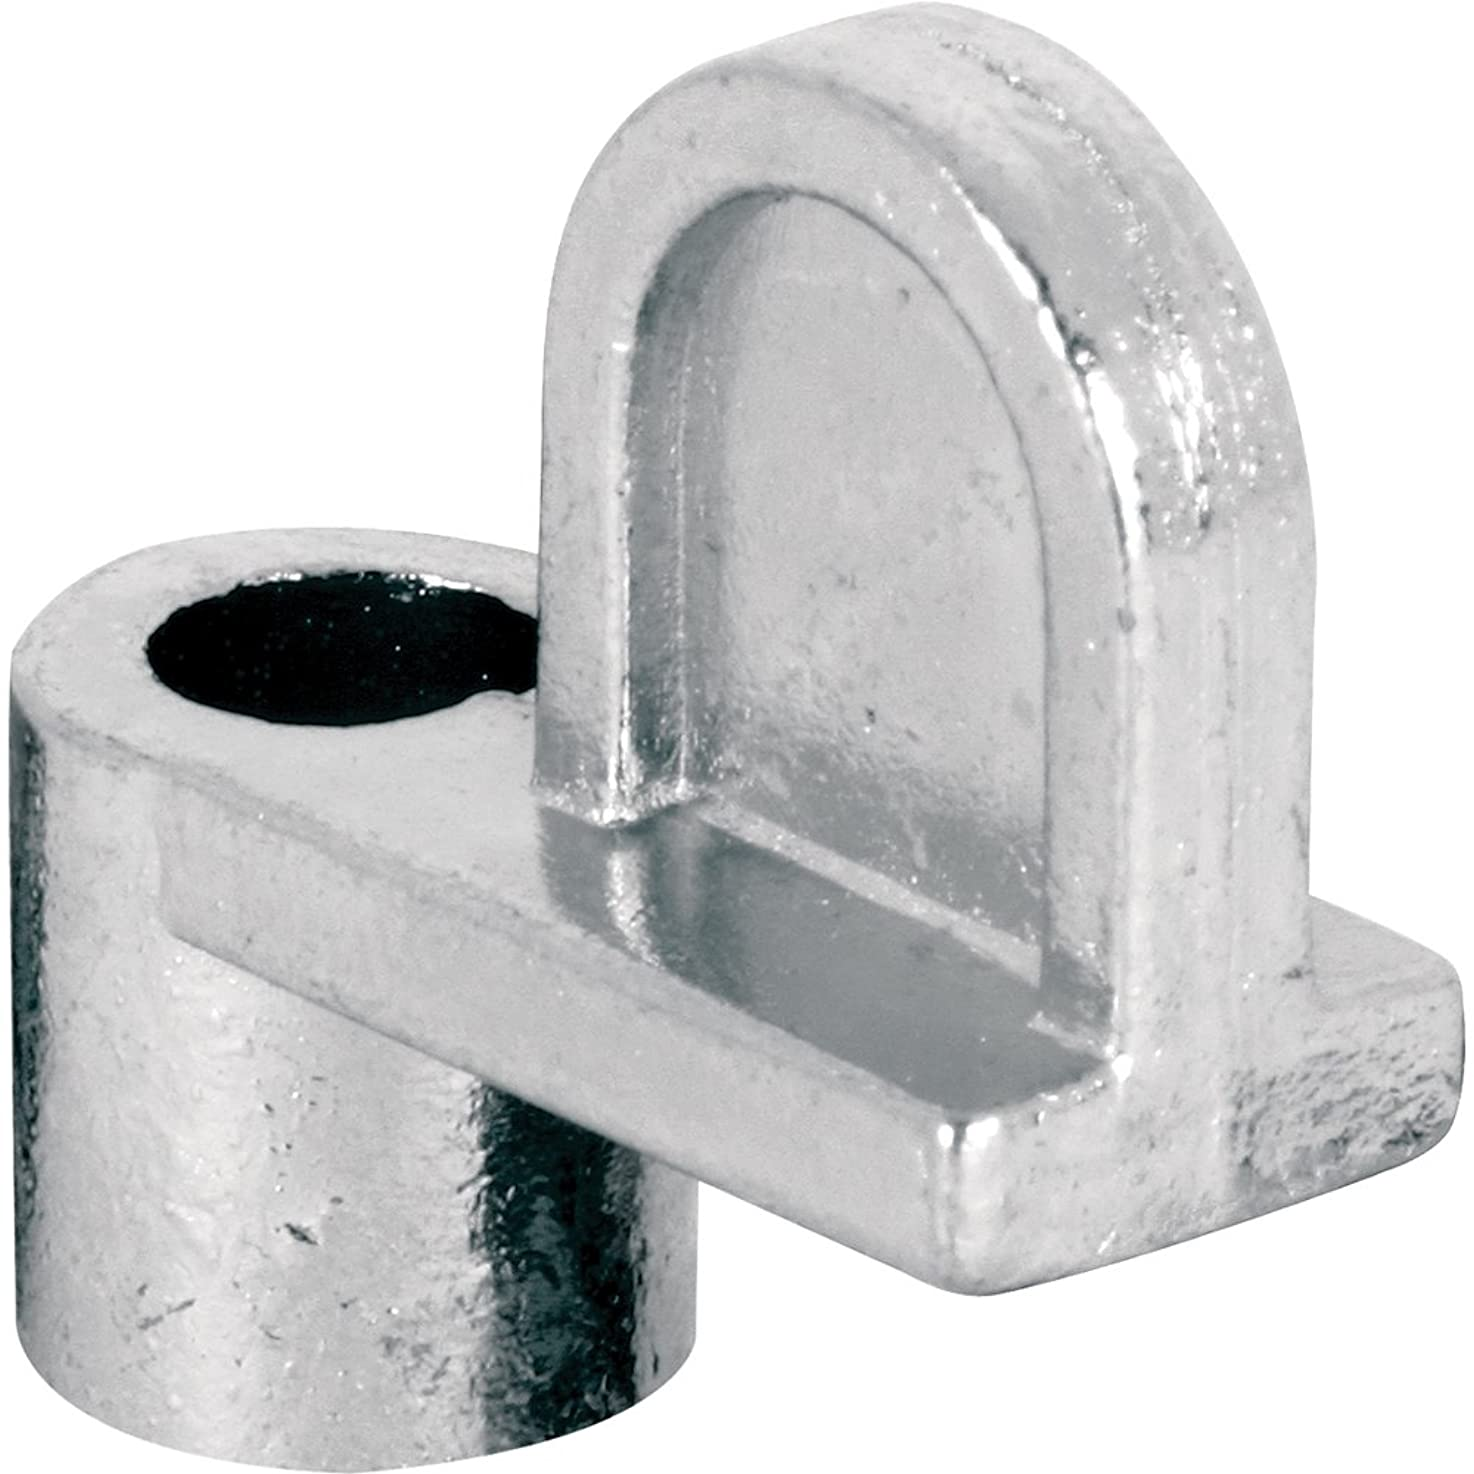 Prime-Line Products L 5502 Window Screen Clip, 1/8-Inch, Zinc, 12-Pack